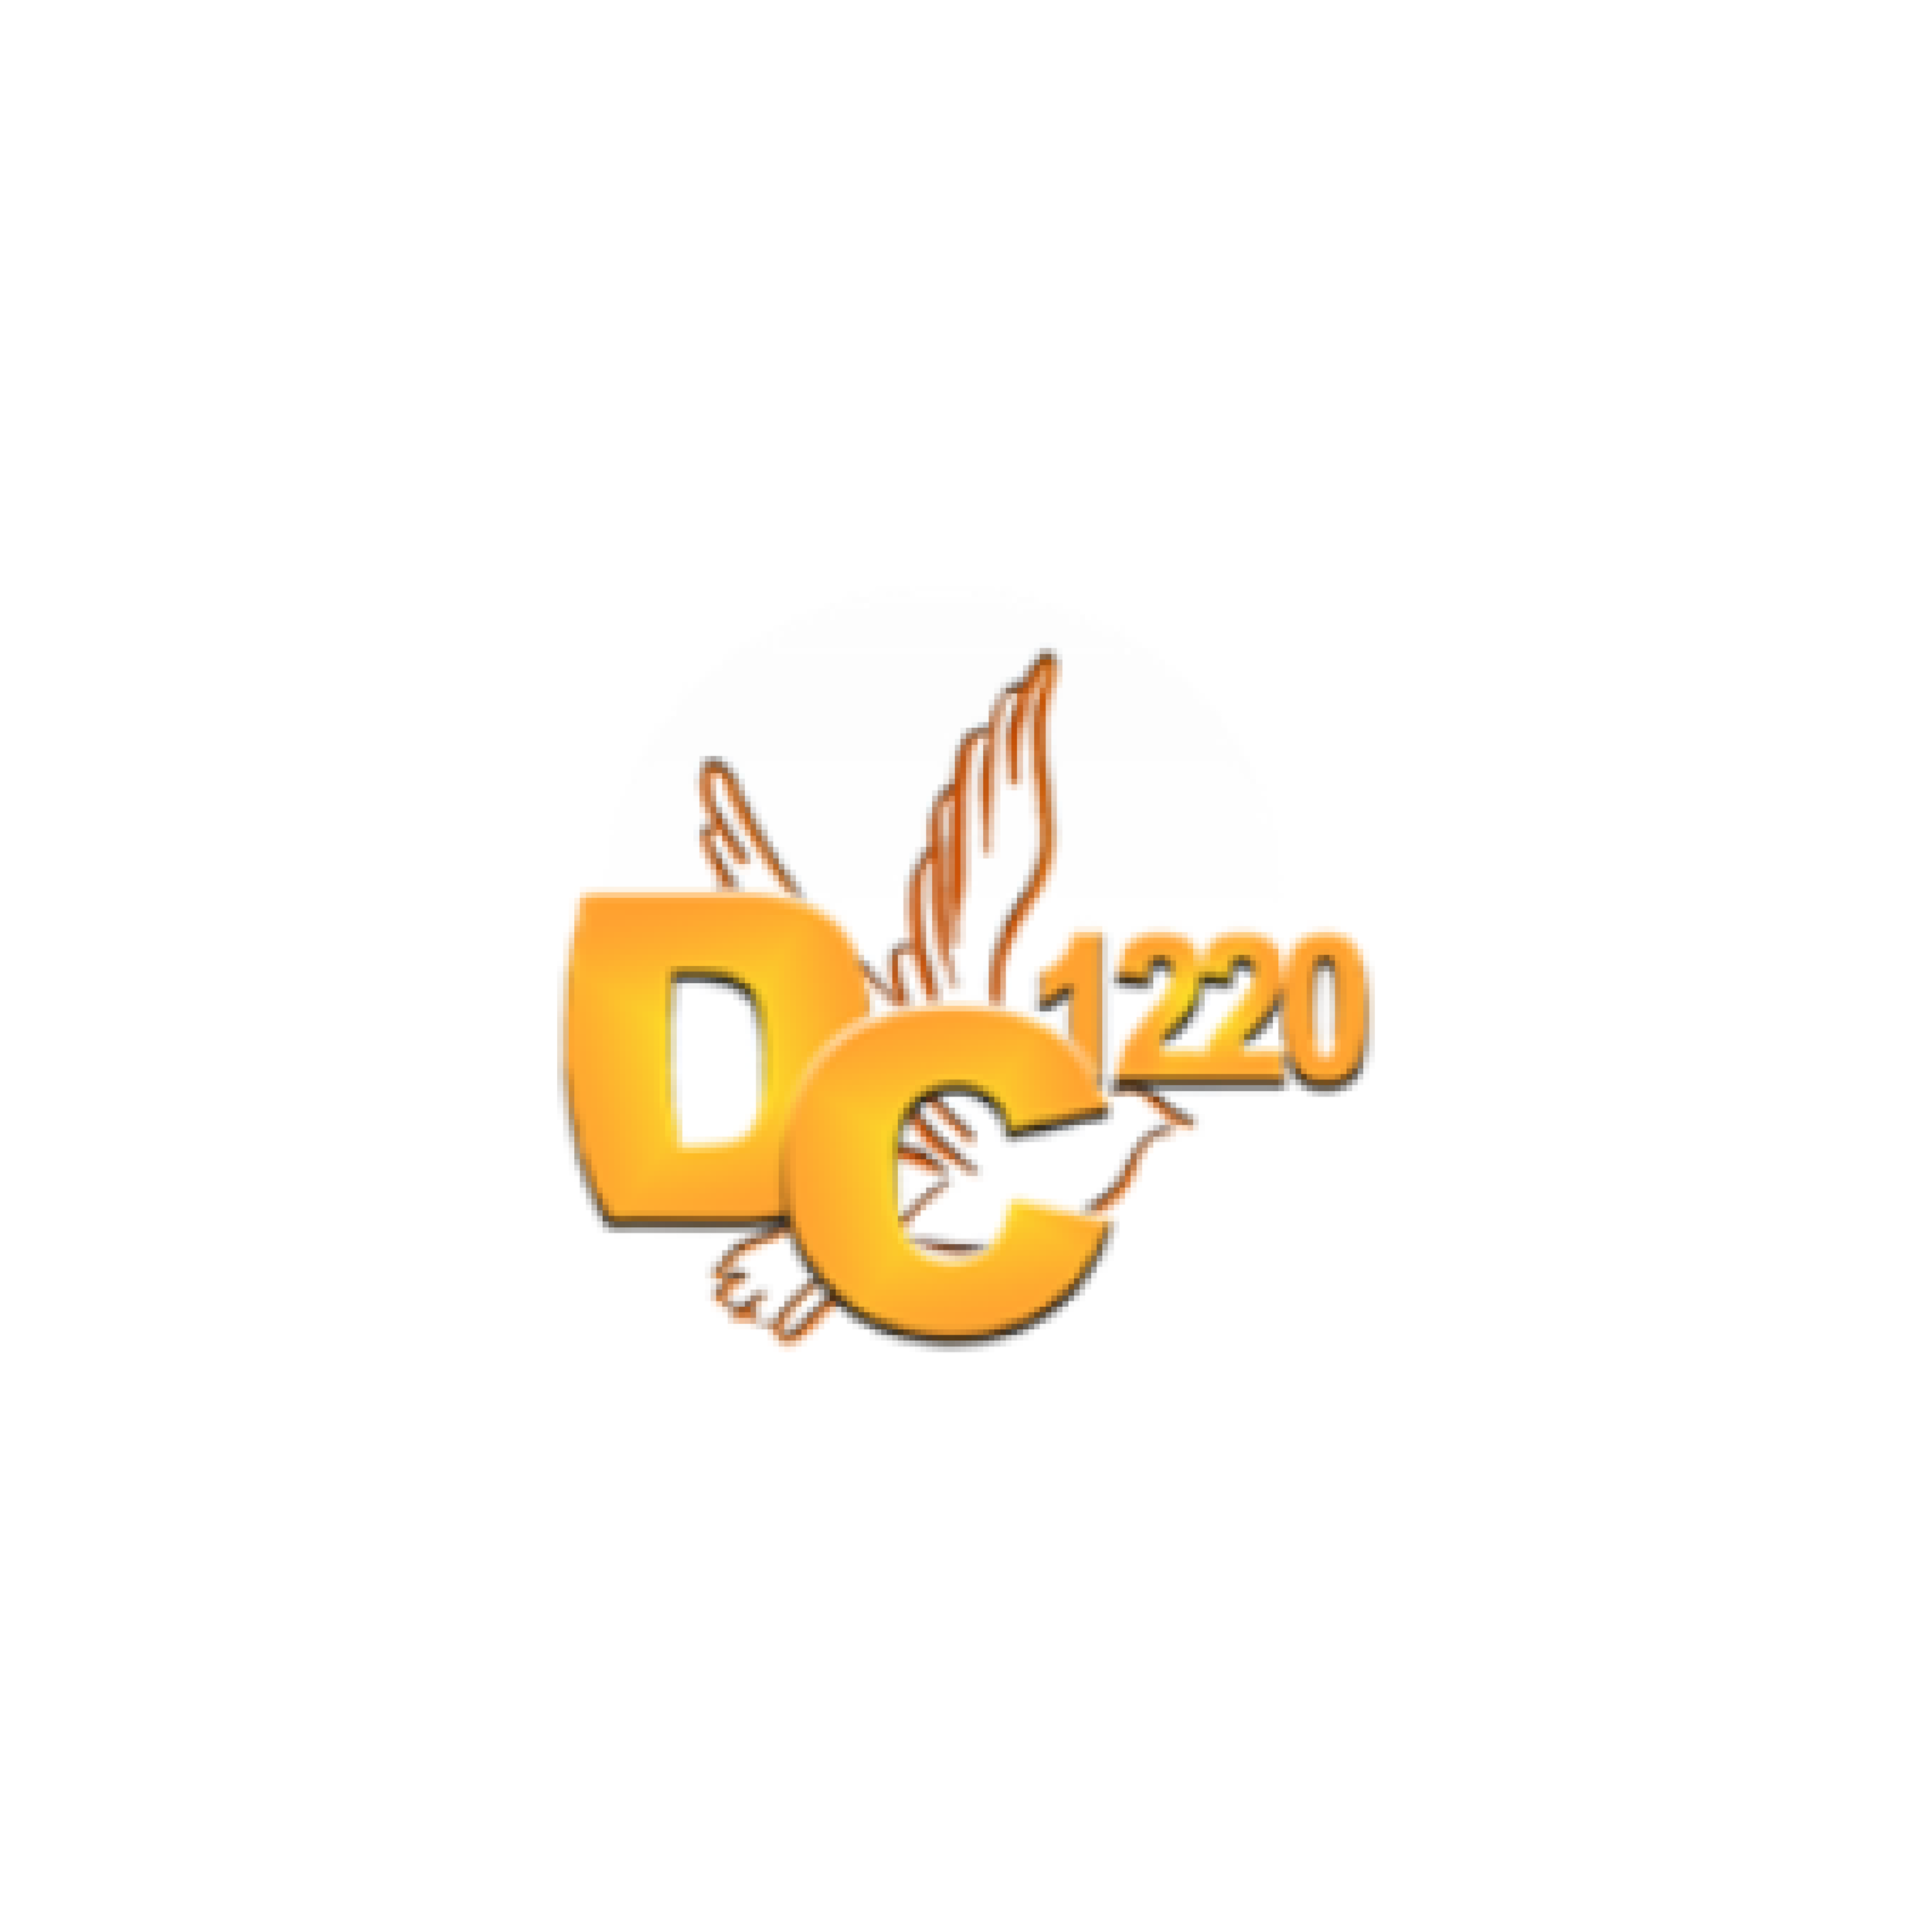 Dr Peg - Media Logos-07.png